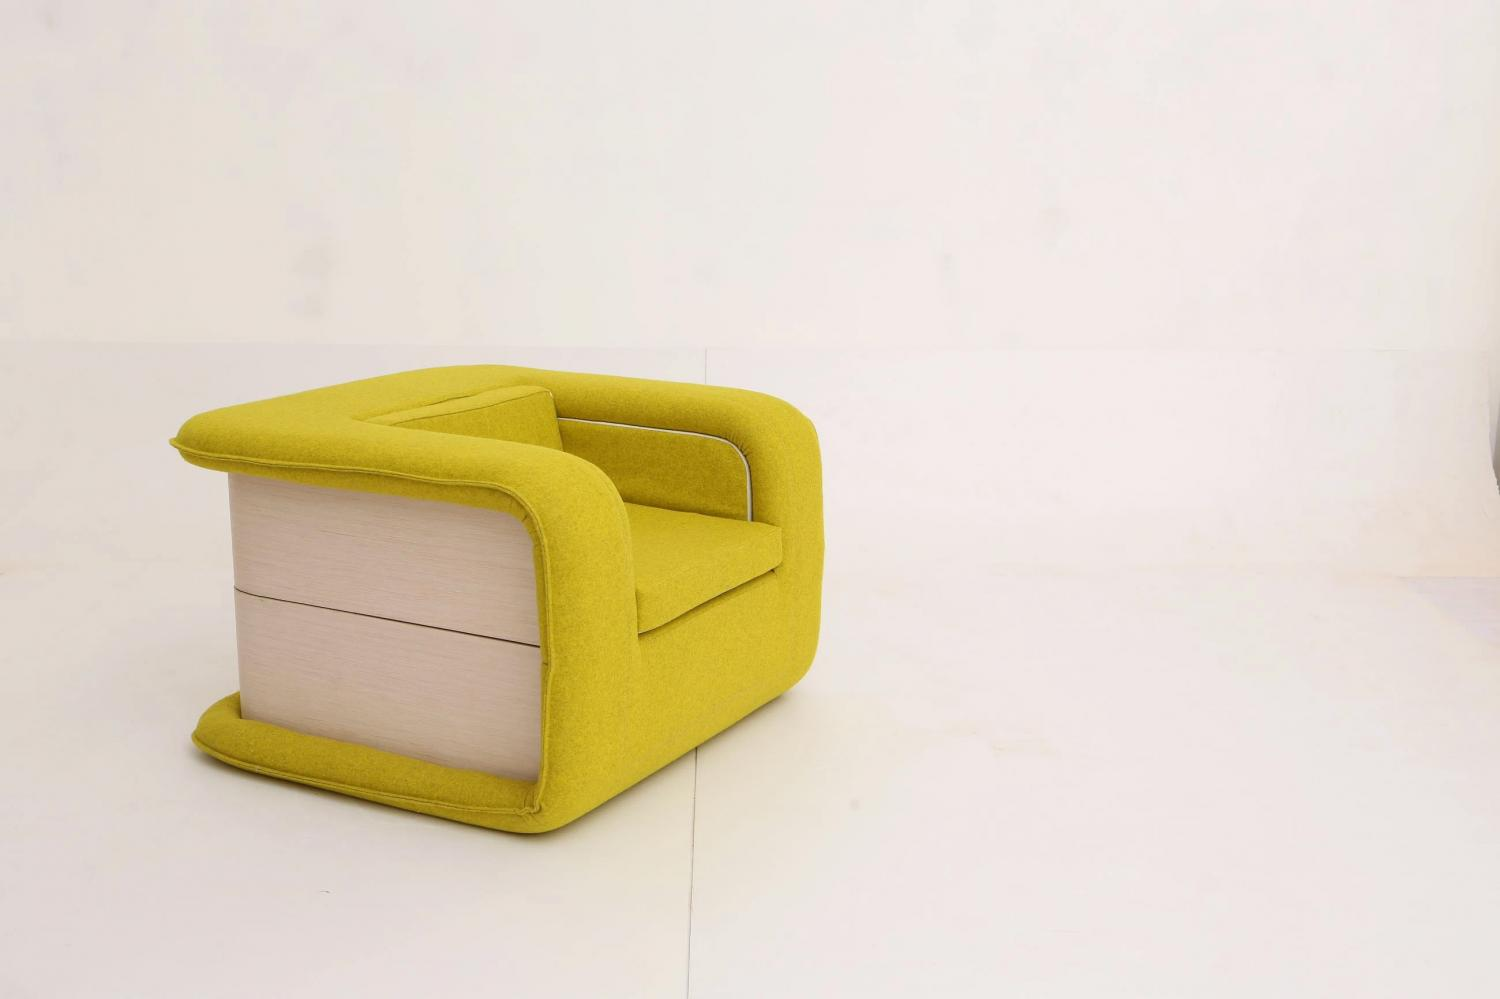 FLOP Multi-functional Arm Chair Instantly Turns Into a Bed - Folding chair bed opens like a book